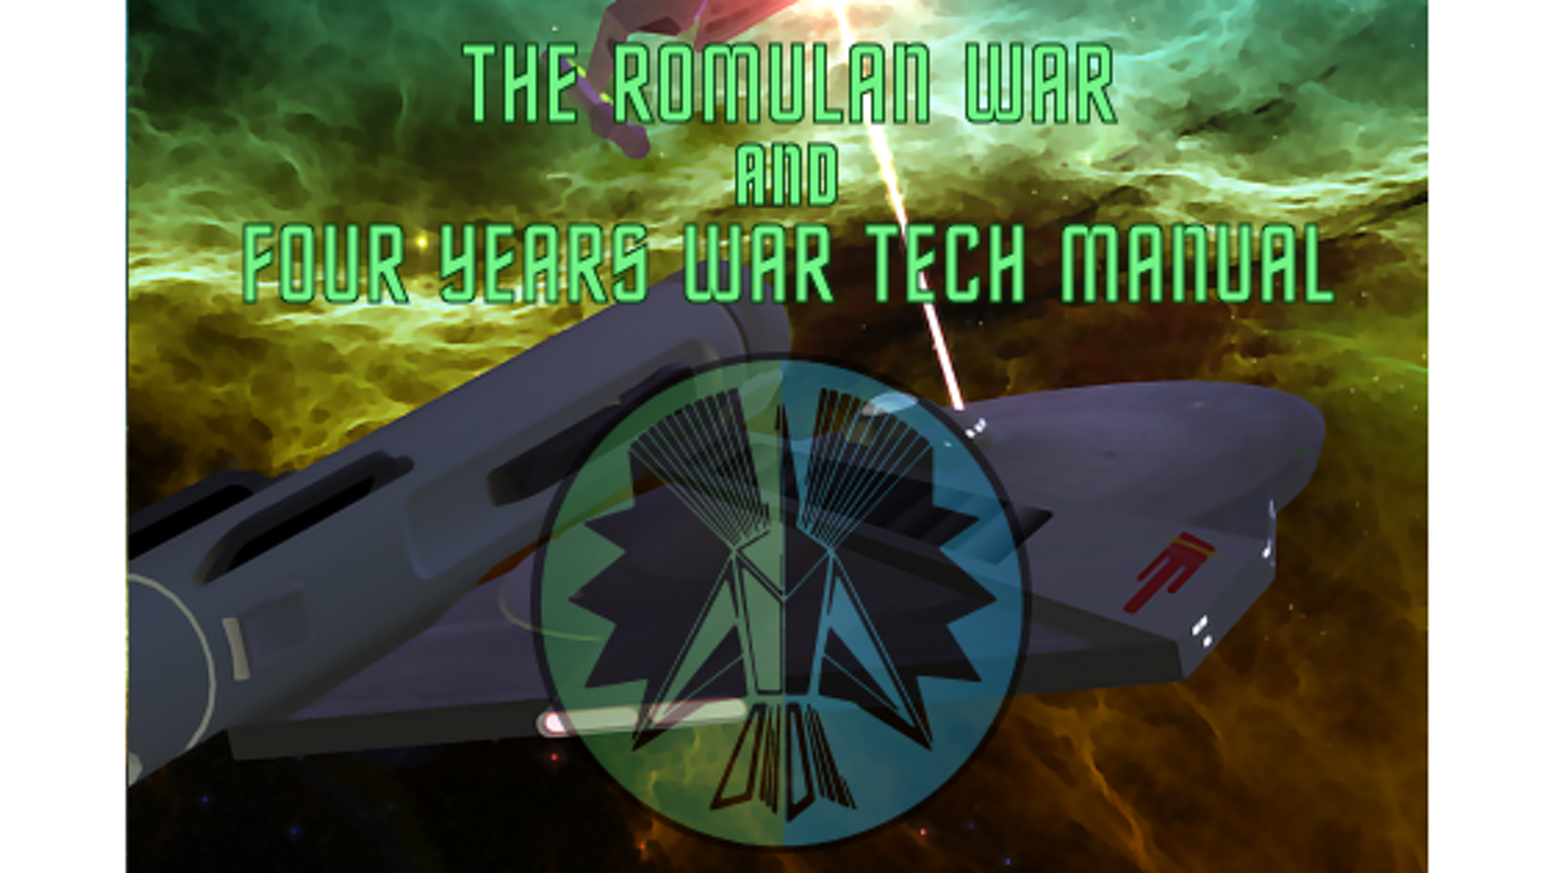 A project to produce the Romulan War series of novels and a supplemental manual to the original Four Years War campaign.